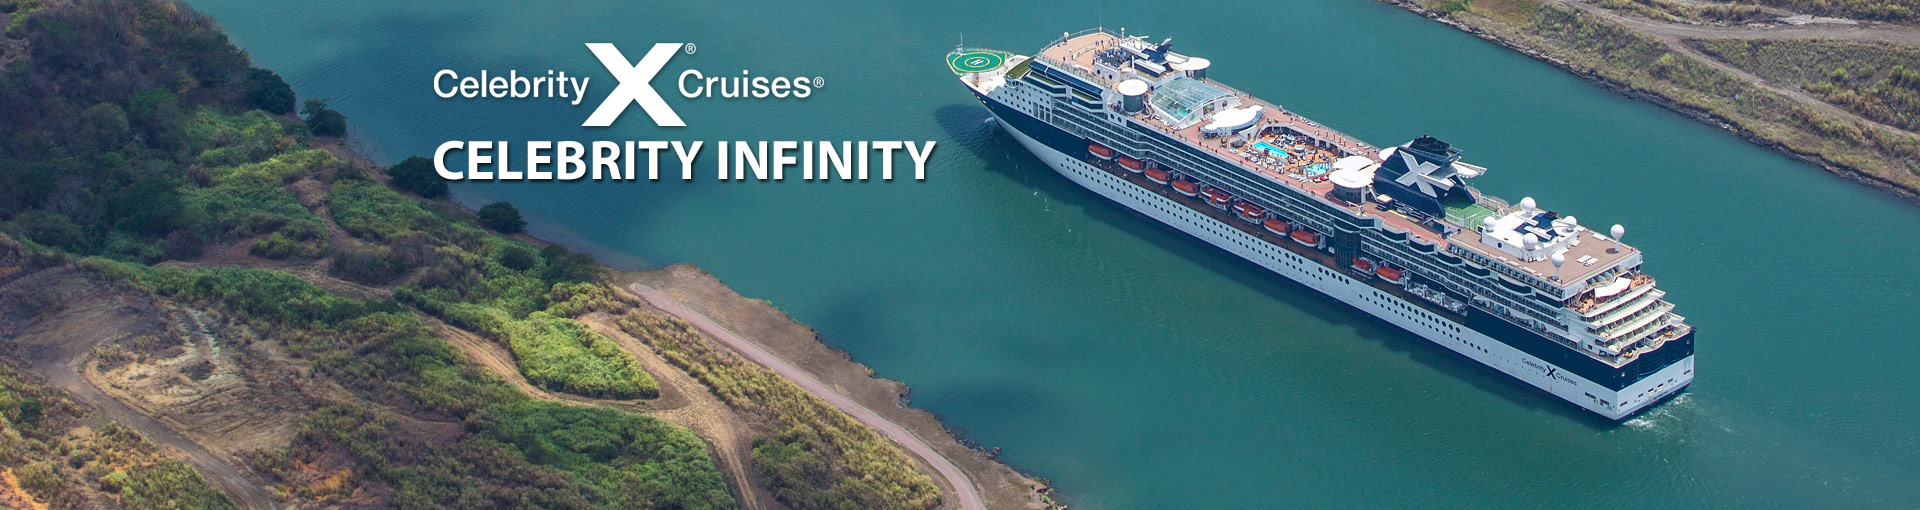 Celebrity CruiseCare Vacation Protection - Paradise-Bound ...